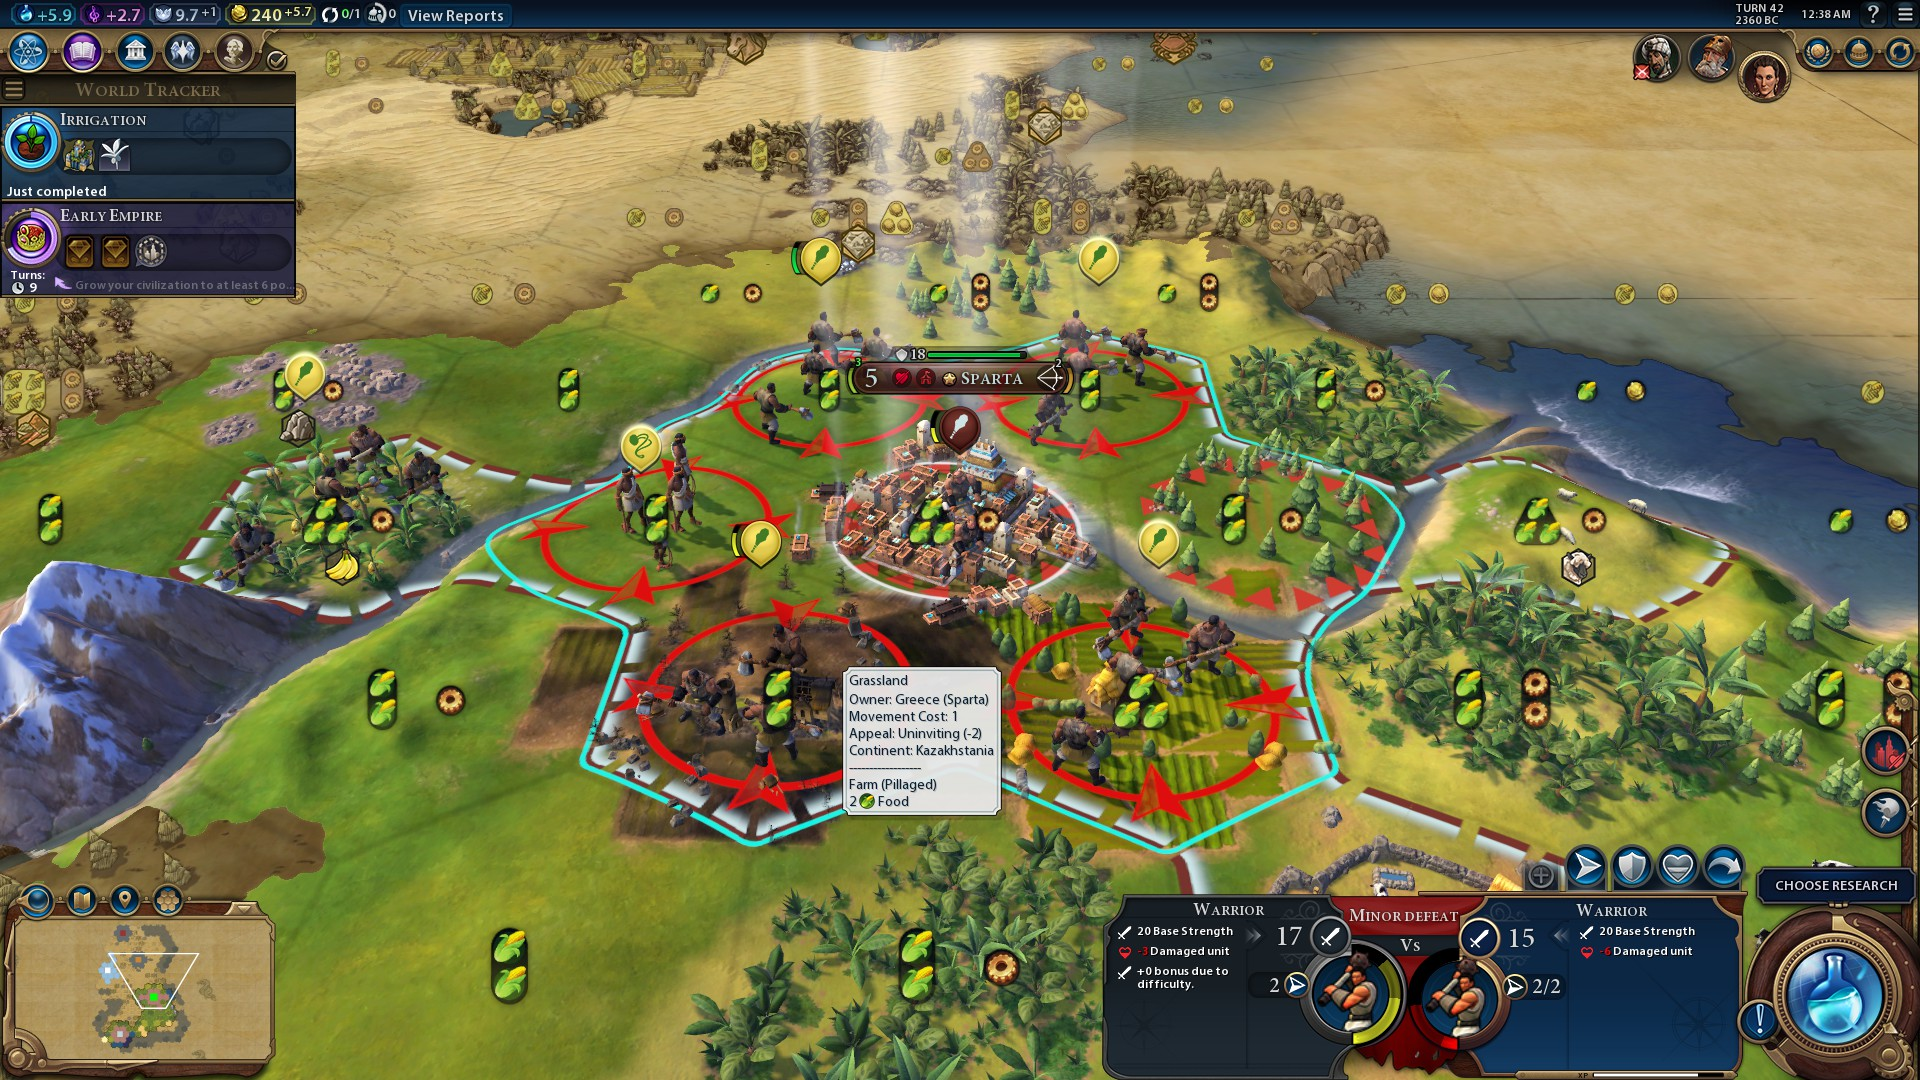 Civilization 6 PC Review: A New Home, Built on Solid Ground | USgamer